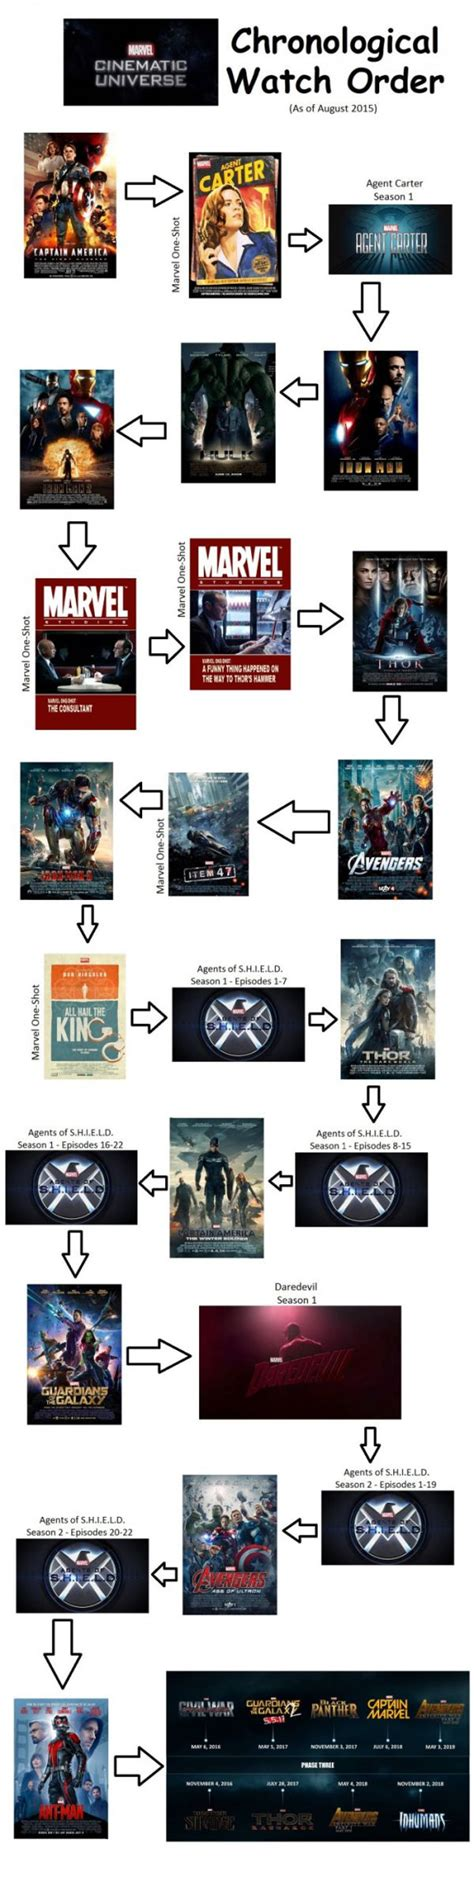 what is the order of the marvel marvel cinematic universe in chronological order